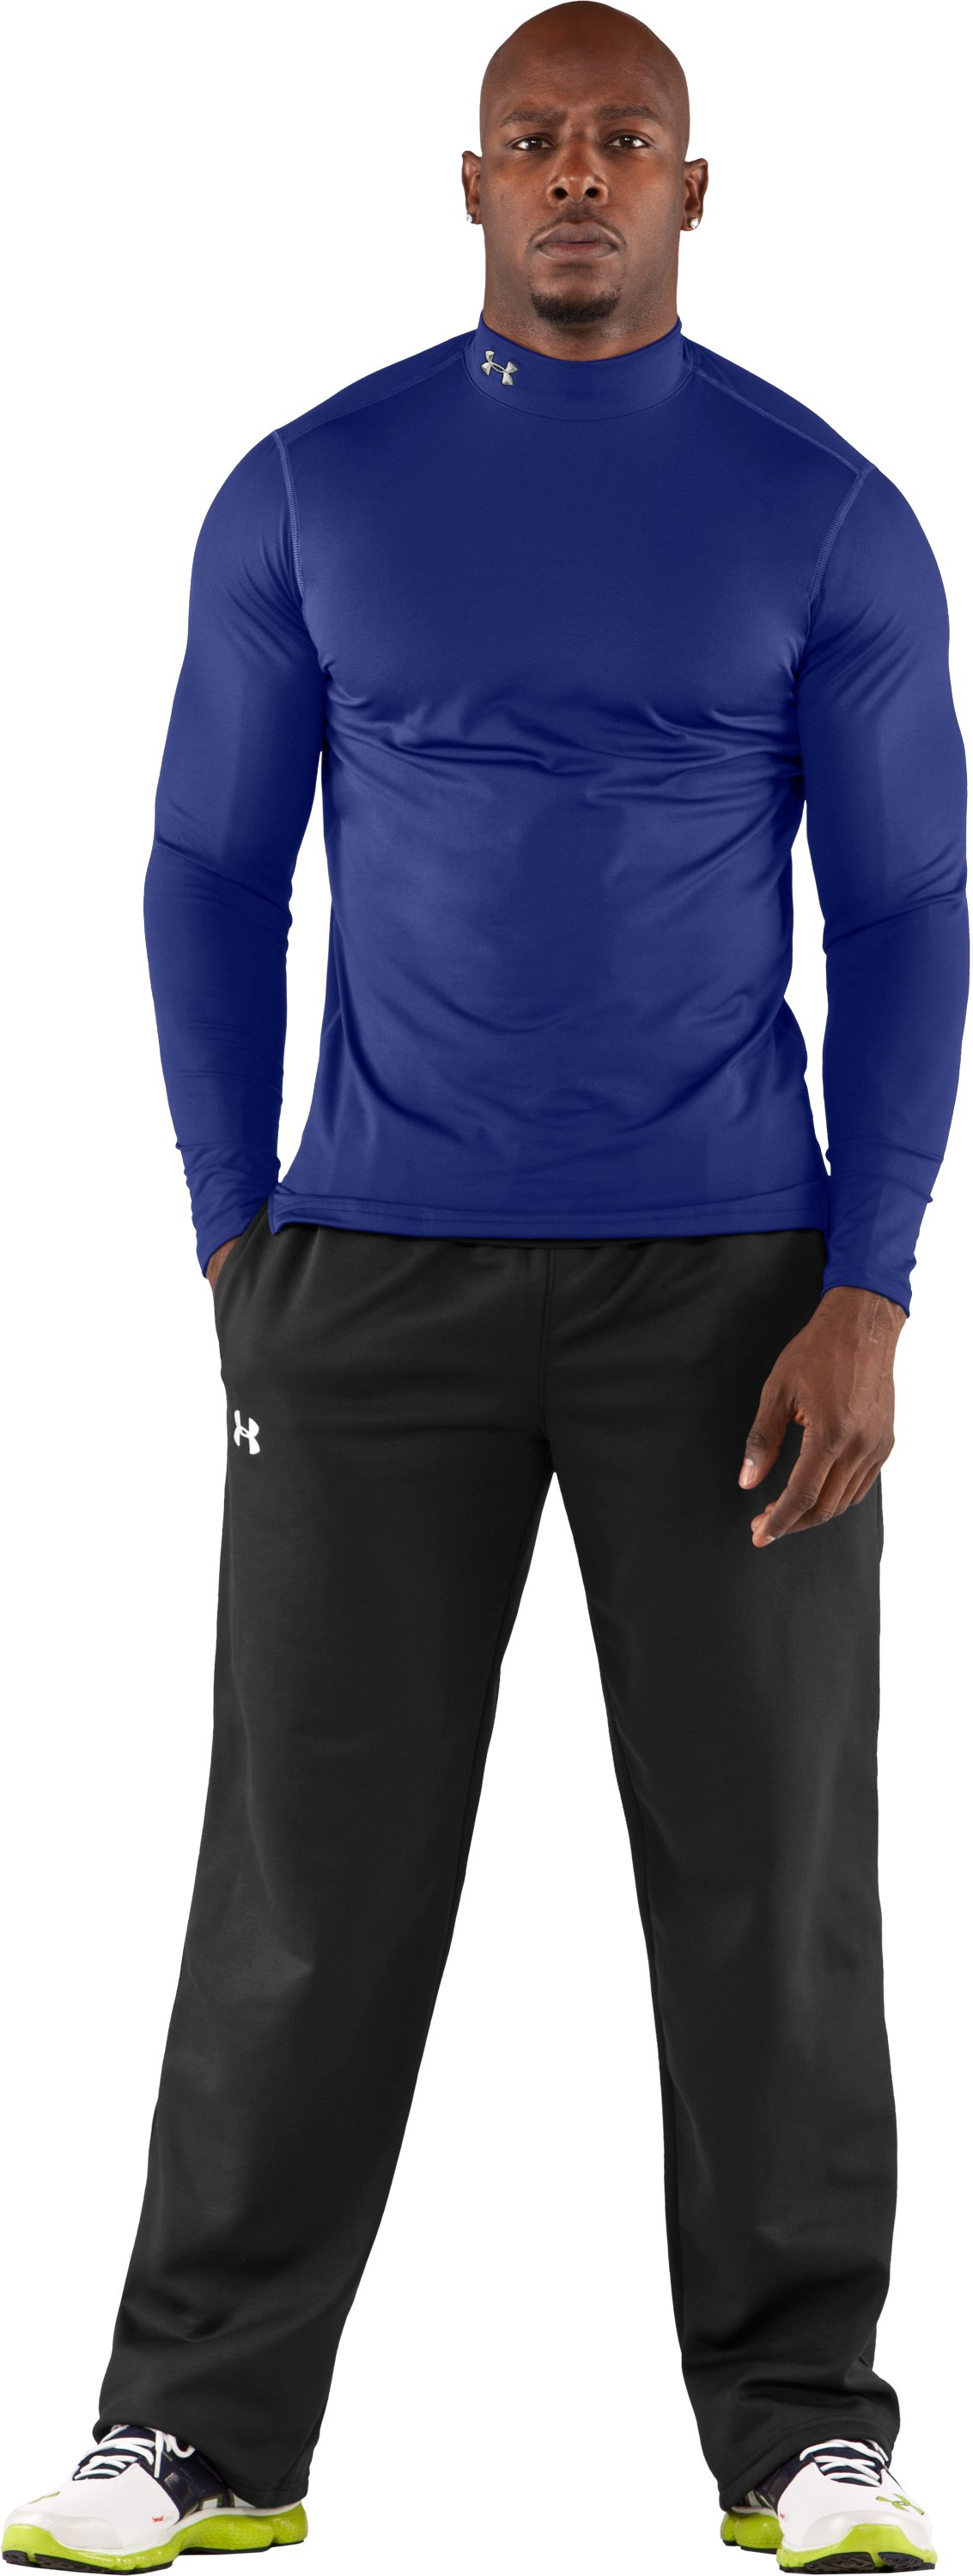 Men's ColdGear® Fitted Long Sleeve Mock, Royal, Front